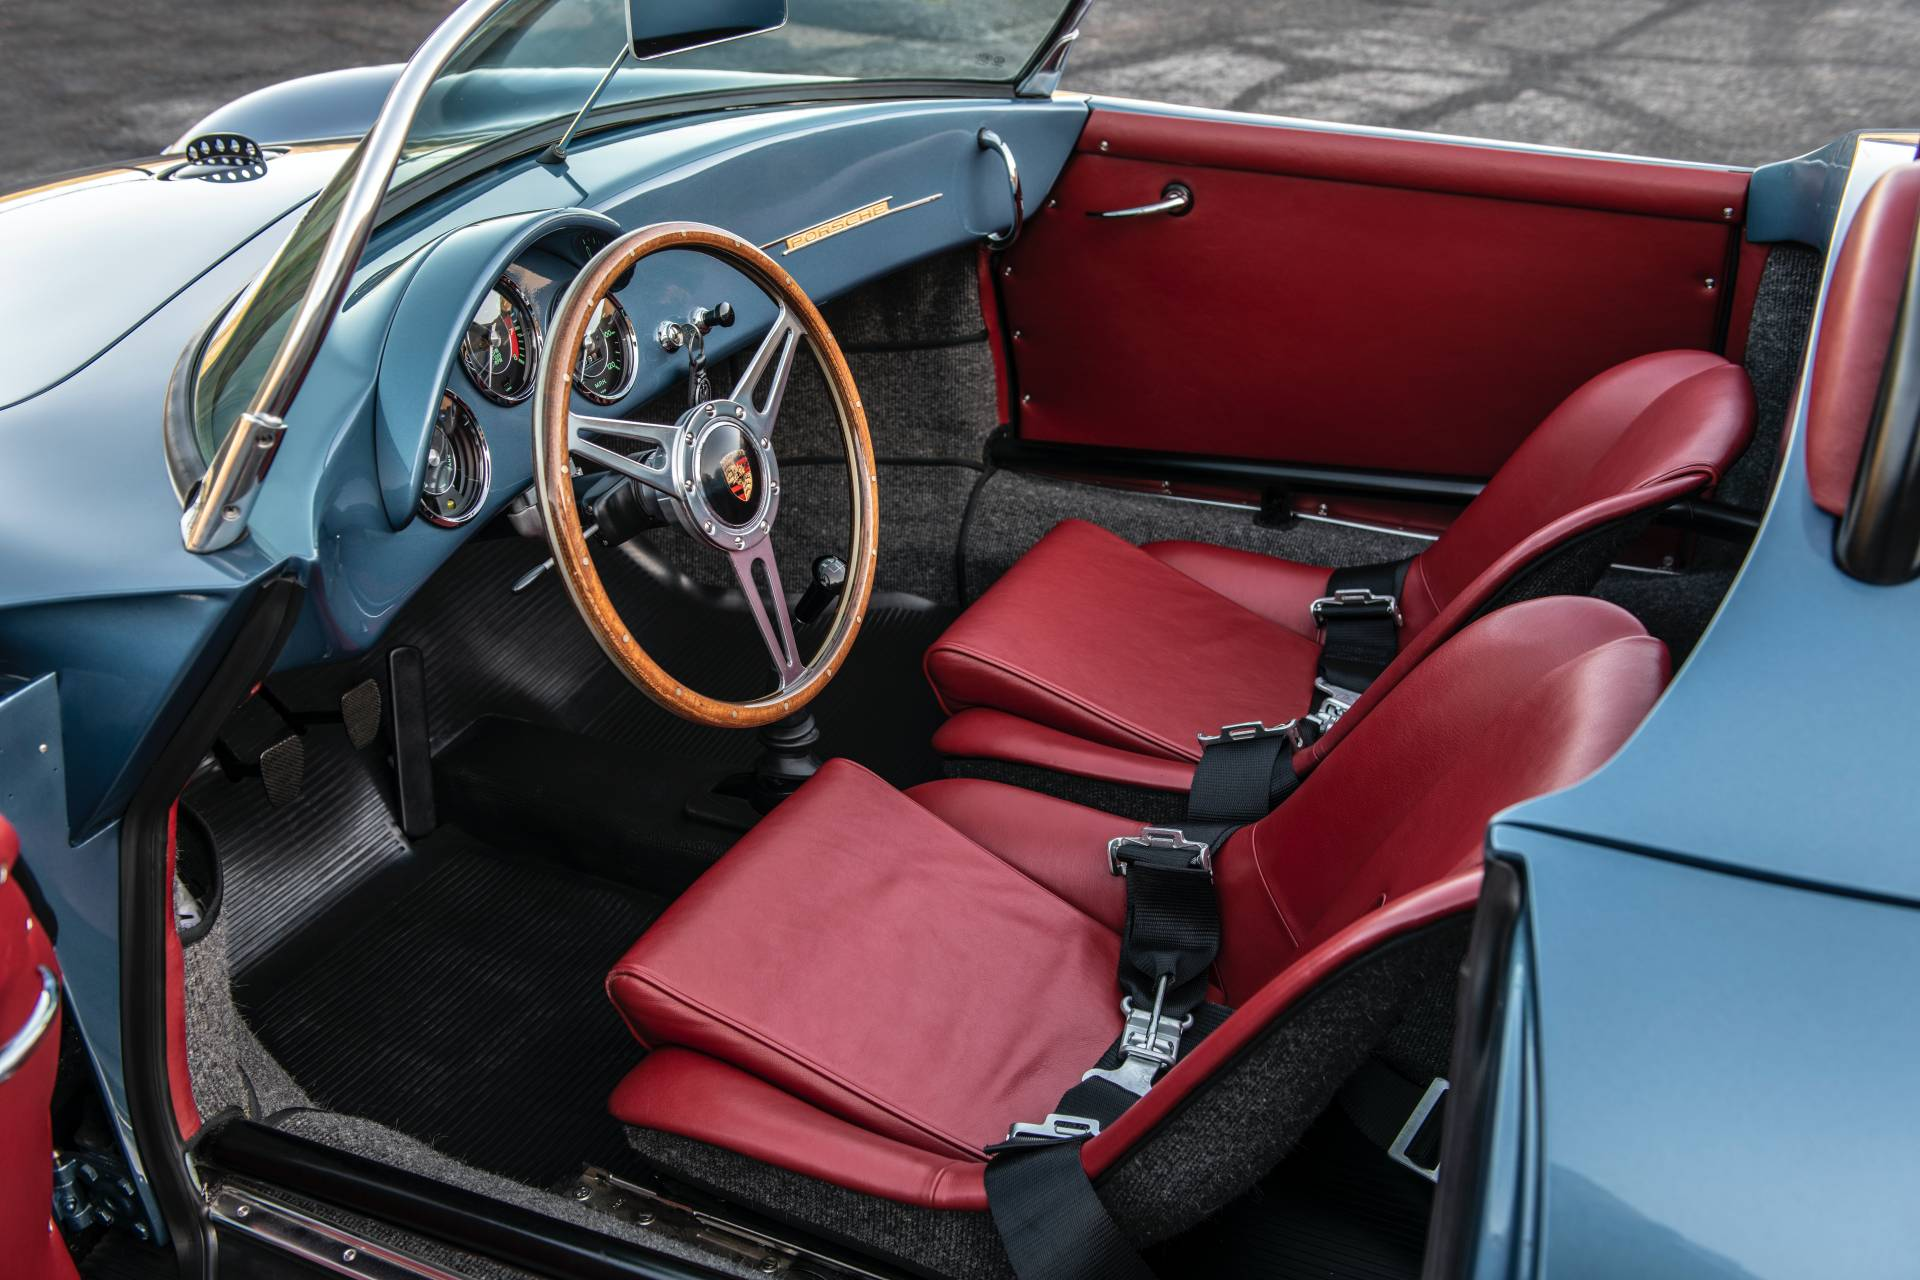 Porsche-356-Speedster-1959-Aquamarine-Transitional-By-Emory-Motorsport-28